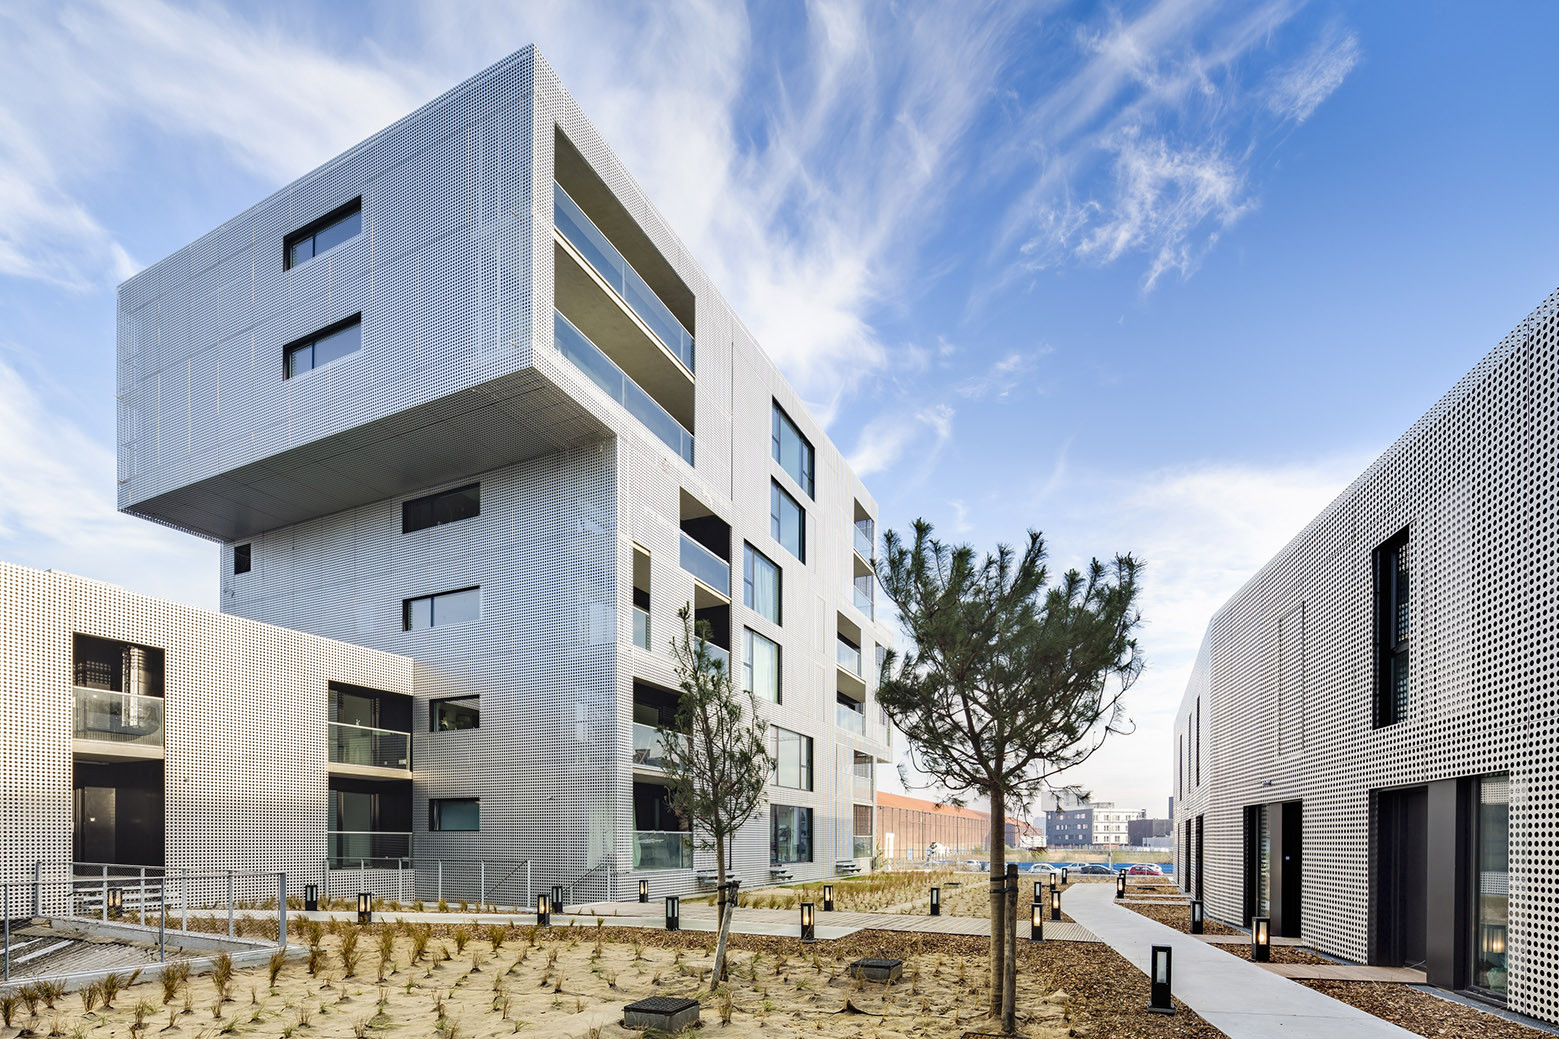 Gallery of housing in le havre phd architectes 8 for 3d architecture le havre